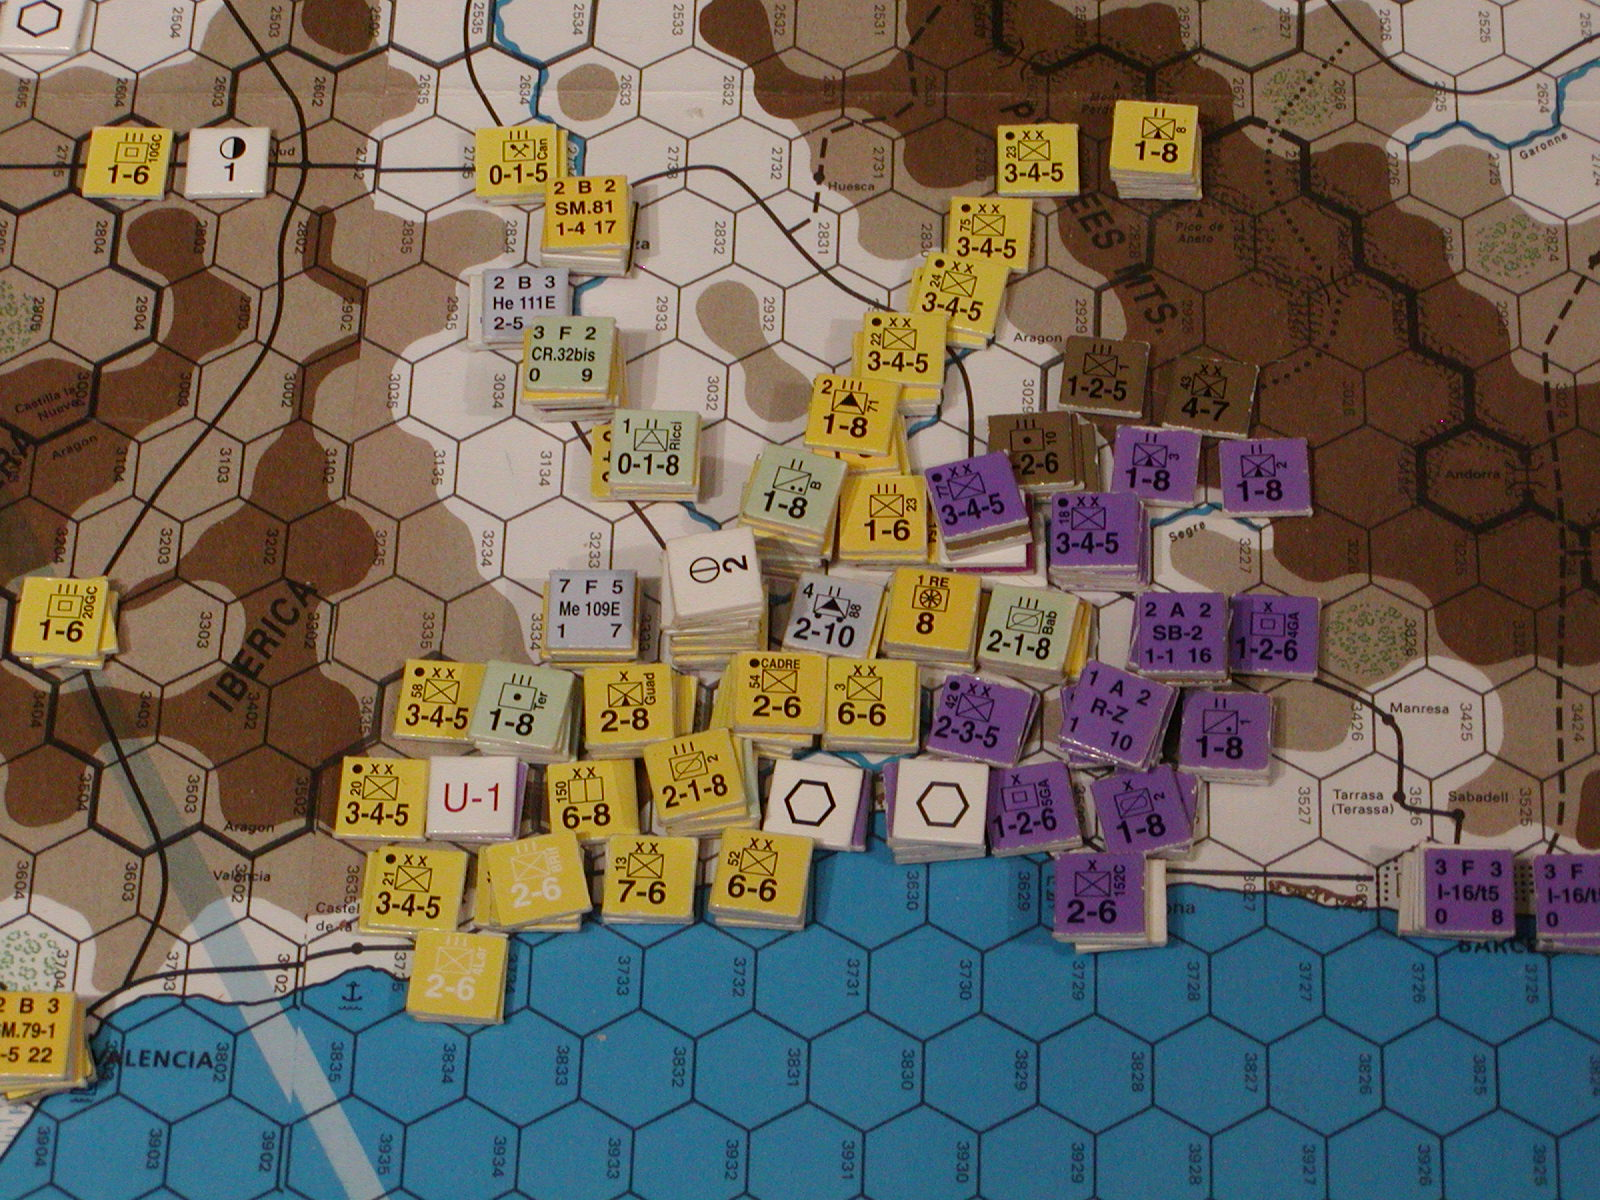 Jul I 1939: Tortosa encircled